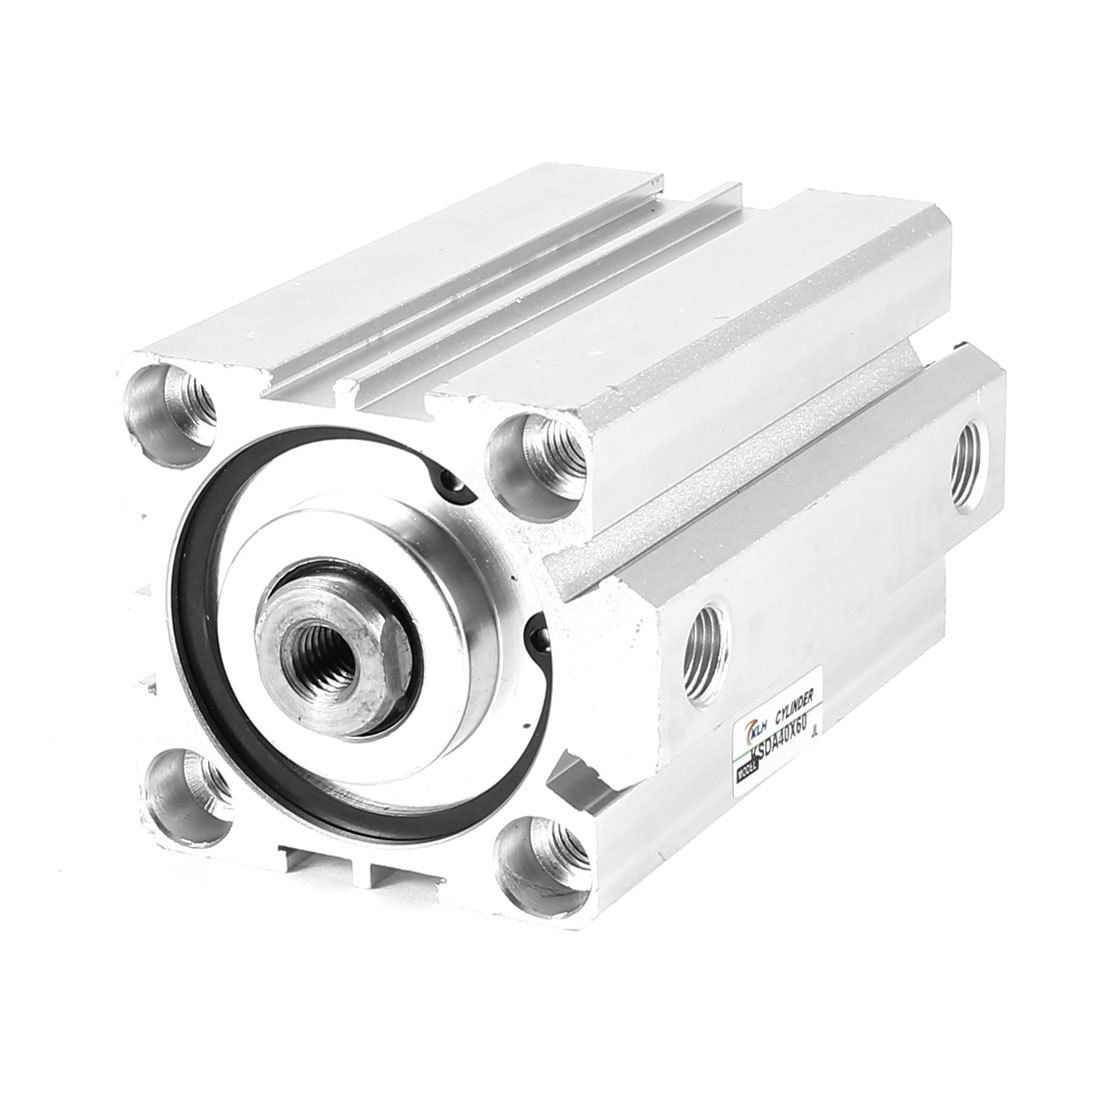 1 Pcs 50mm Bore 80mm Stroke Stainless steel Pneumatic Air Cylinder SDA50-80 угломер 80 50mm